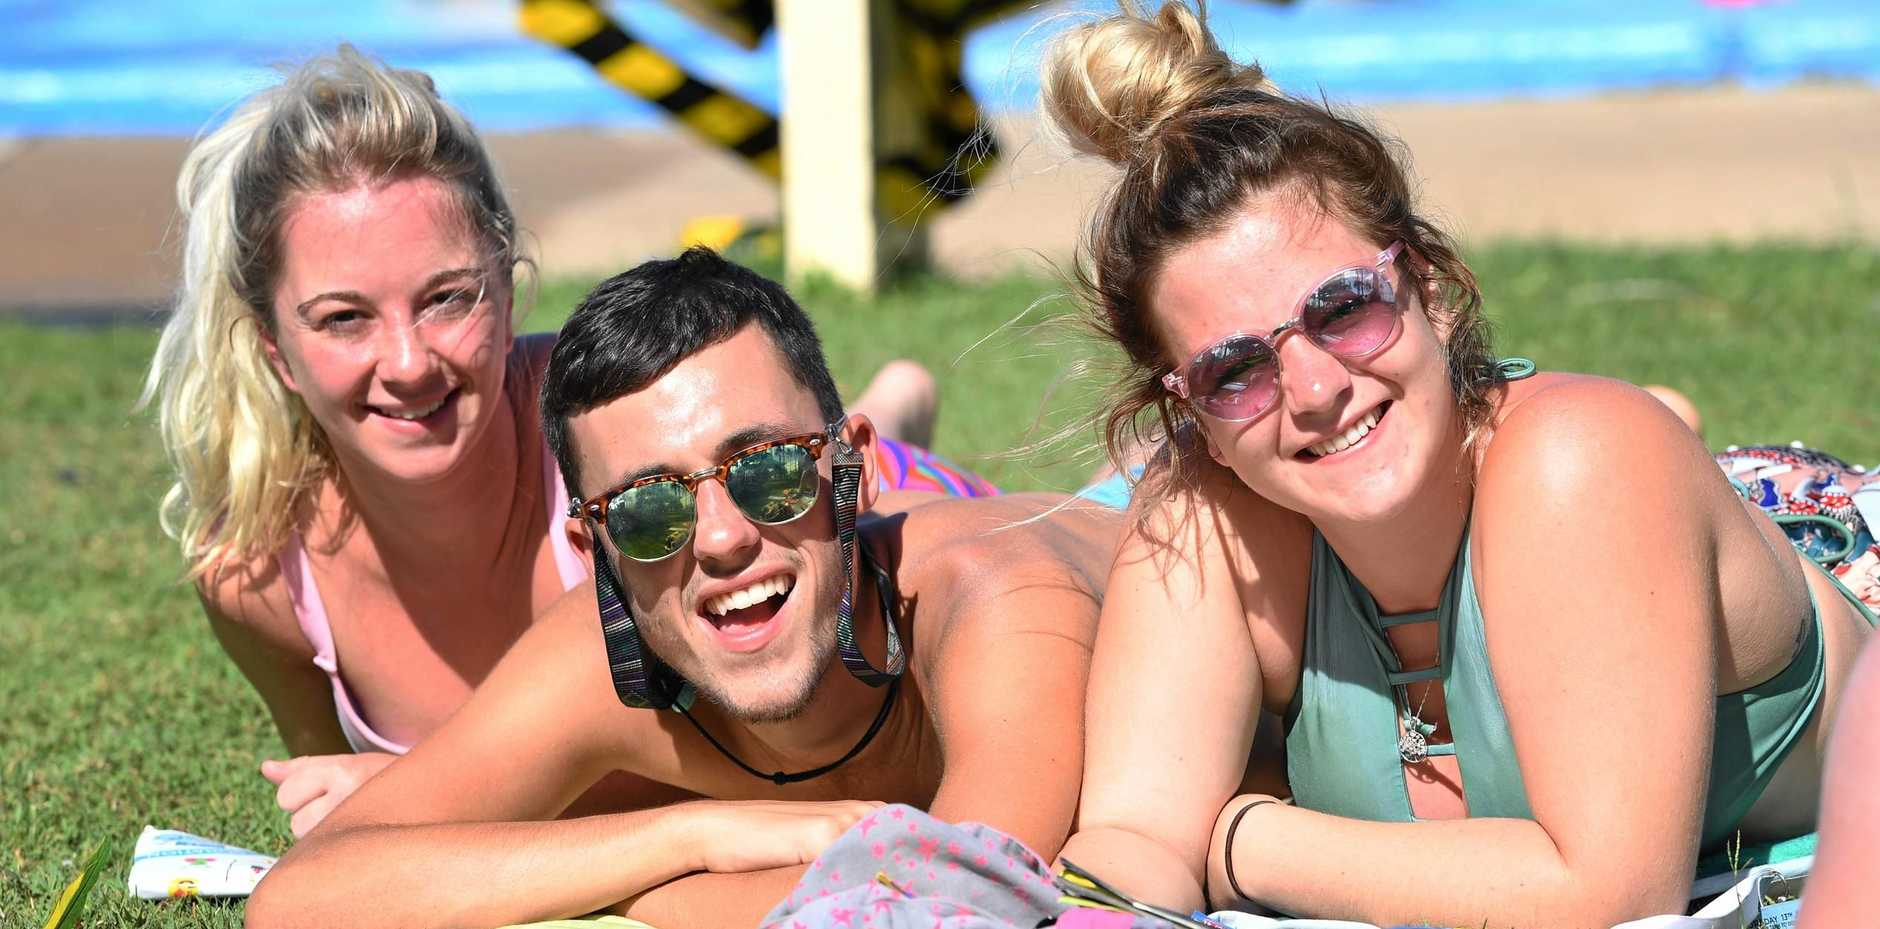 RIVER UPGRADE: Anzac Pool could be expanded in plans Bundaberg Regional Council has for parklands along the Burnett River. Pictured is Sophie Knights, Dylan Moore and Danielle Phippen relaxing at Anzac Pool yesterday.